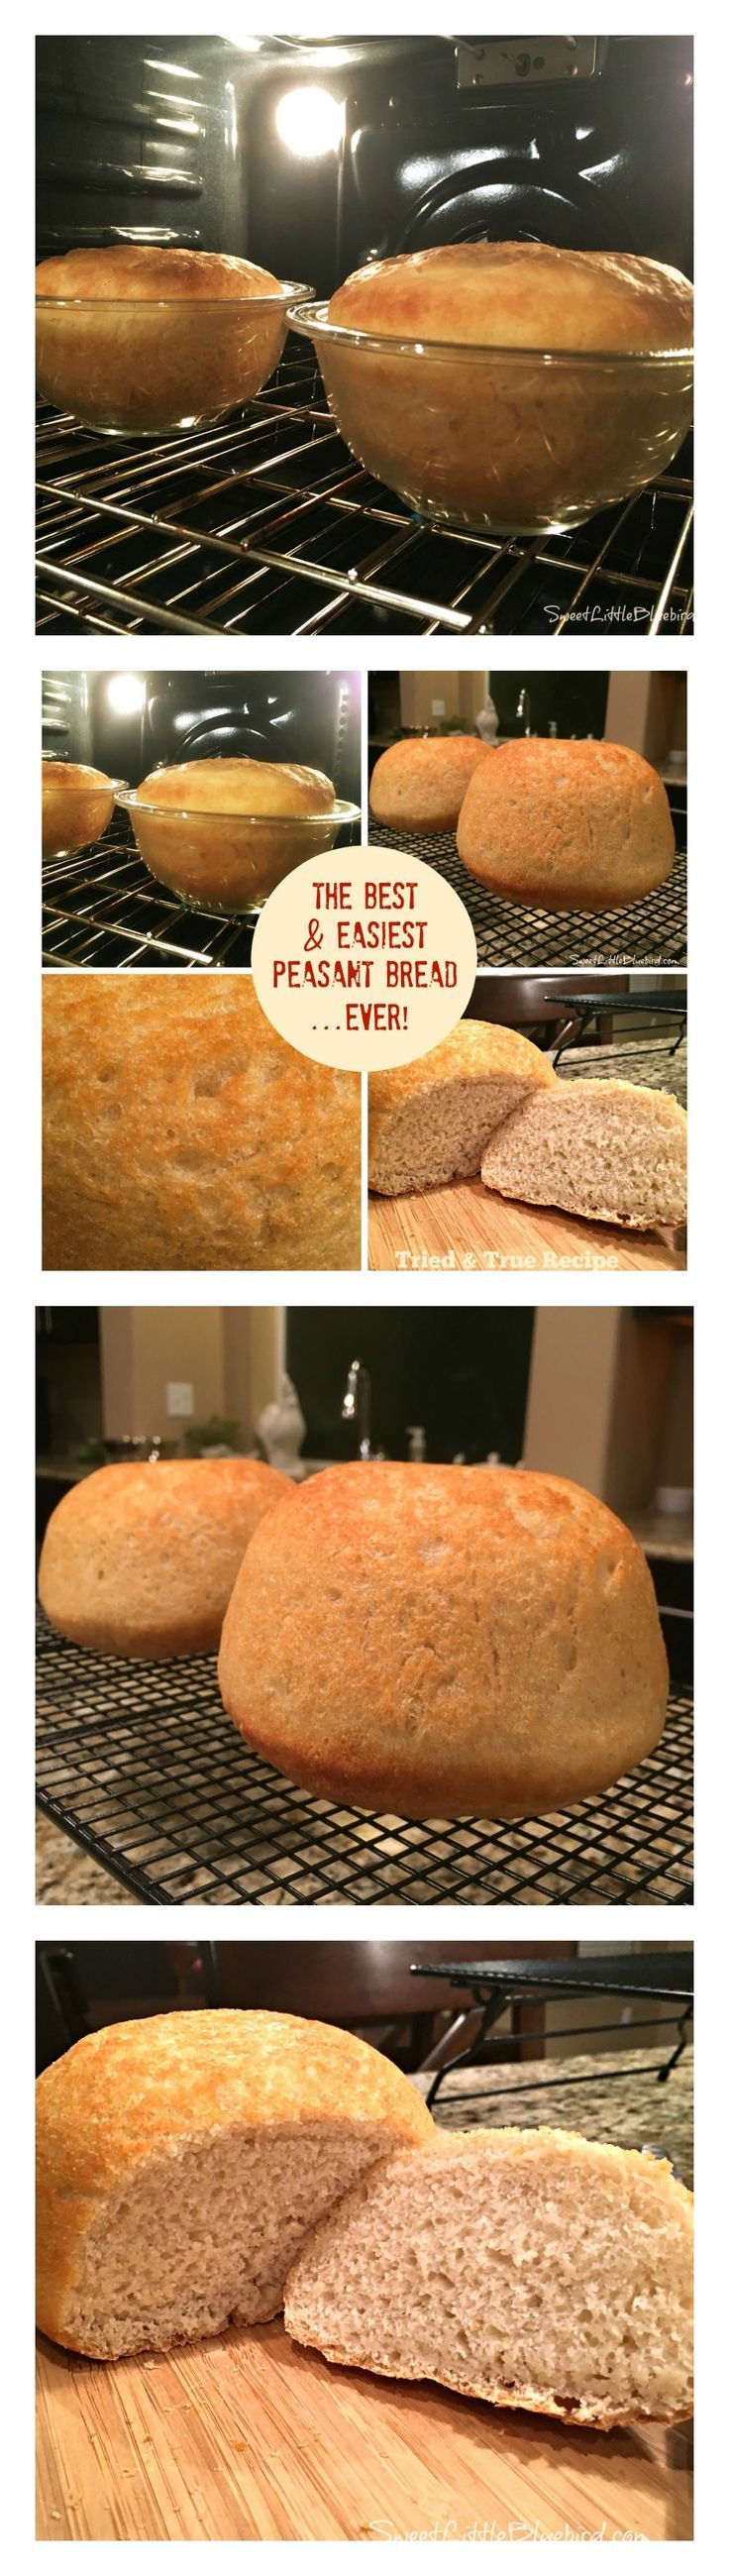 THE BEST & EASIEST PEASANT BREAD....EVER!! No-kneading!! One of my favorite Pinterest finds!!  This wonderful bread is moist and spongy on the inside, with a delicious crispy, buttery crust. I love this bread!! ♥ |  http://SweetLittleBluebird.com